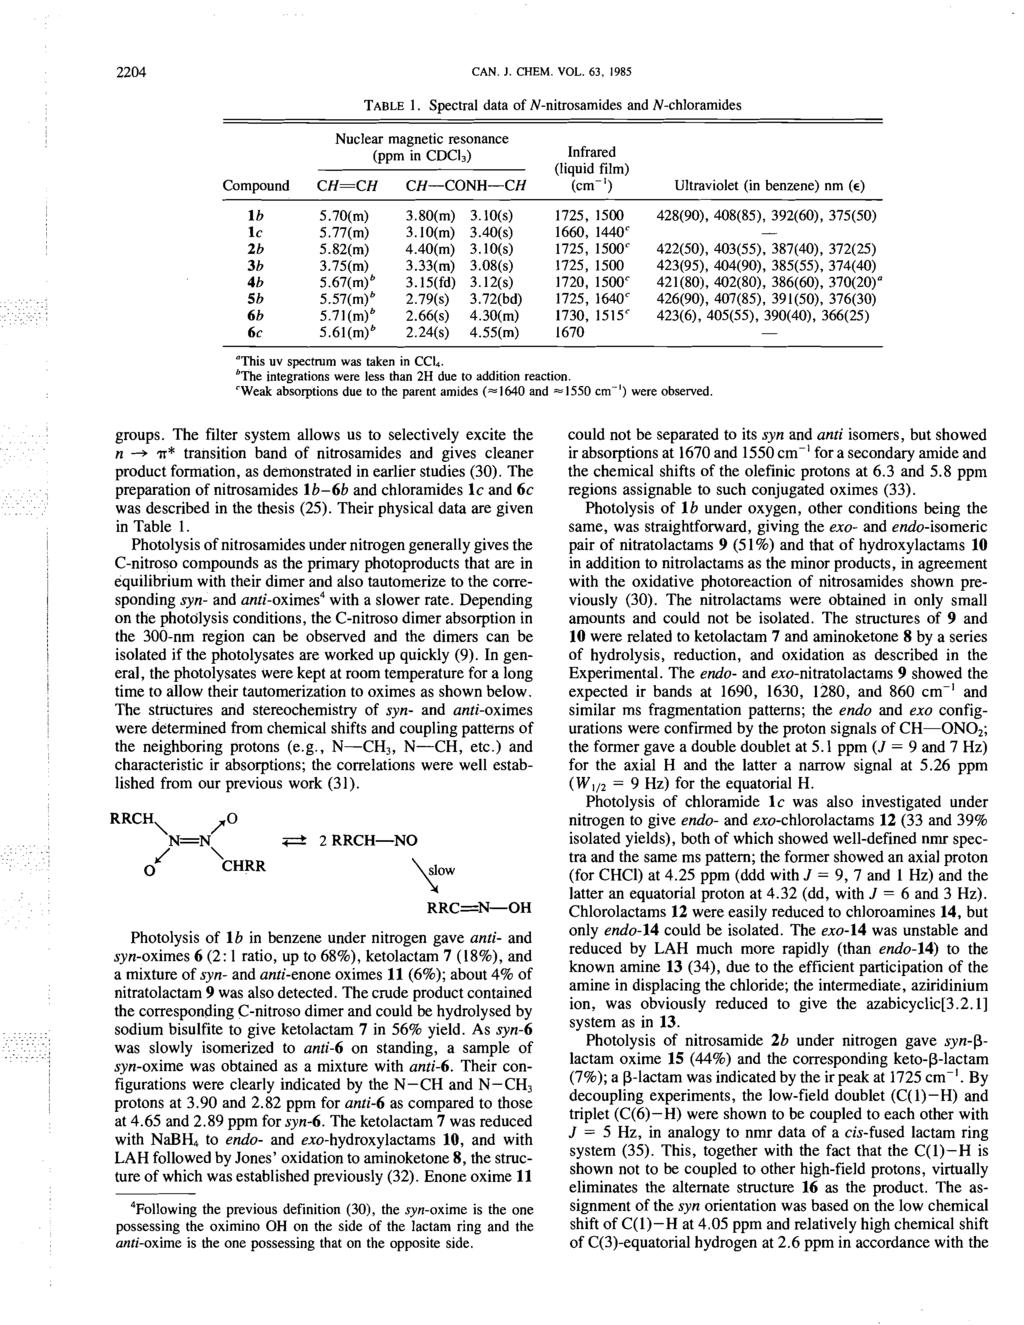 CAN. J. CHEM. VOL. 63, 1985 TABLE 1.